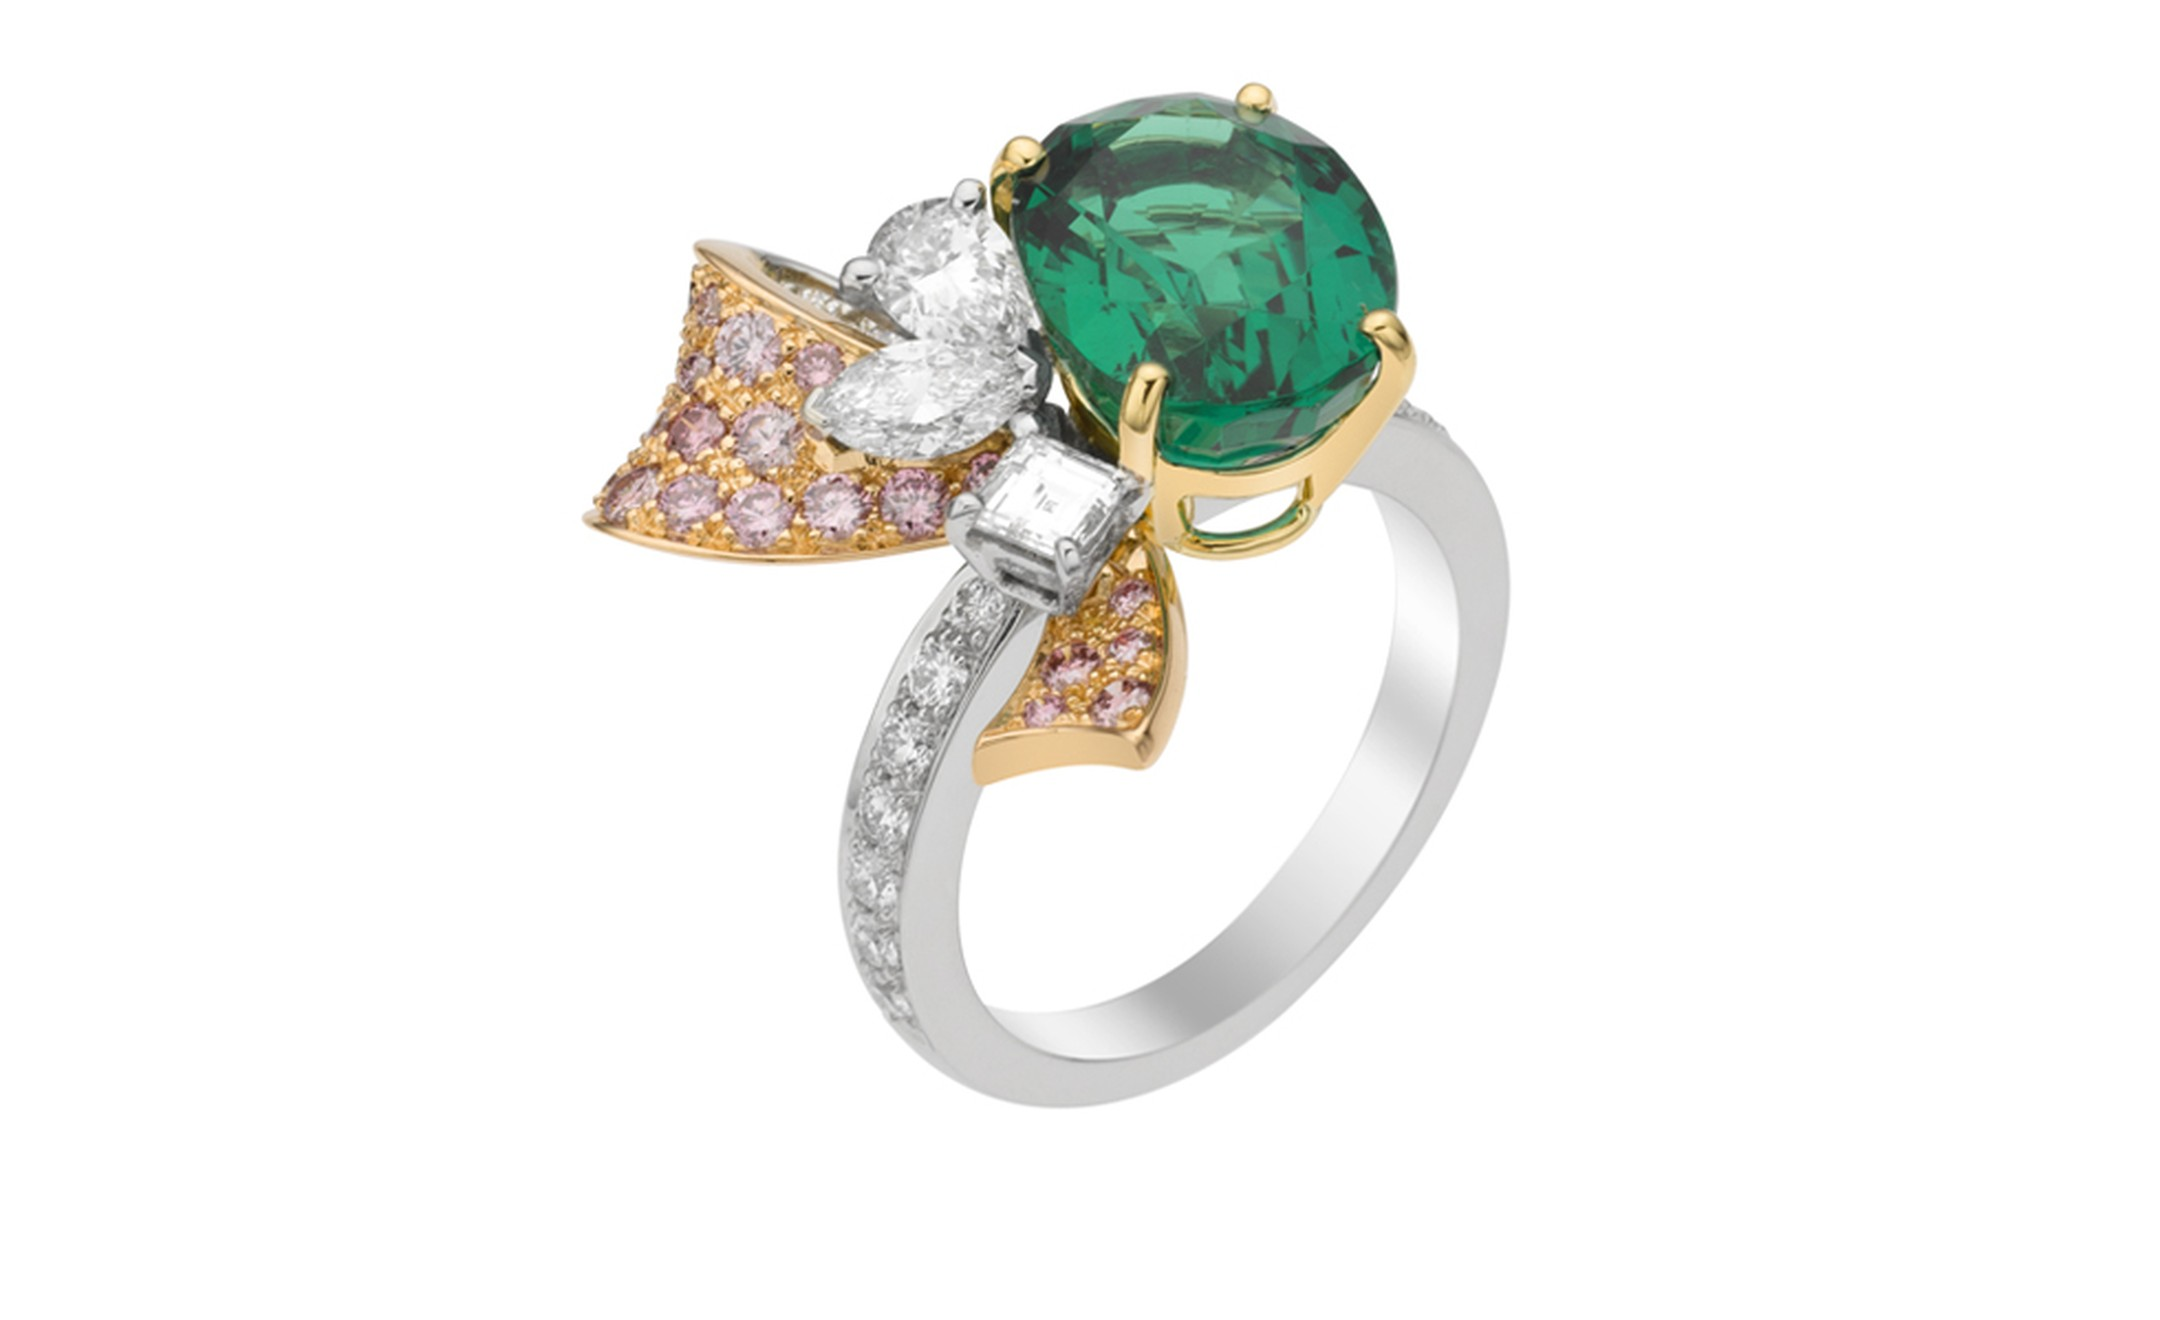 VAN CLEEF & ARPELS. Sonatine ring in platinum, pink gold, oval emerald, round pink diamonds and white diamonds.POA